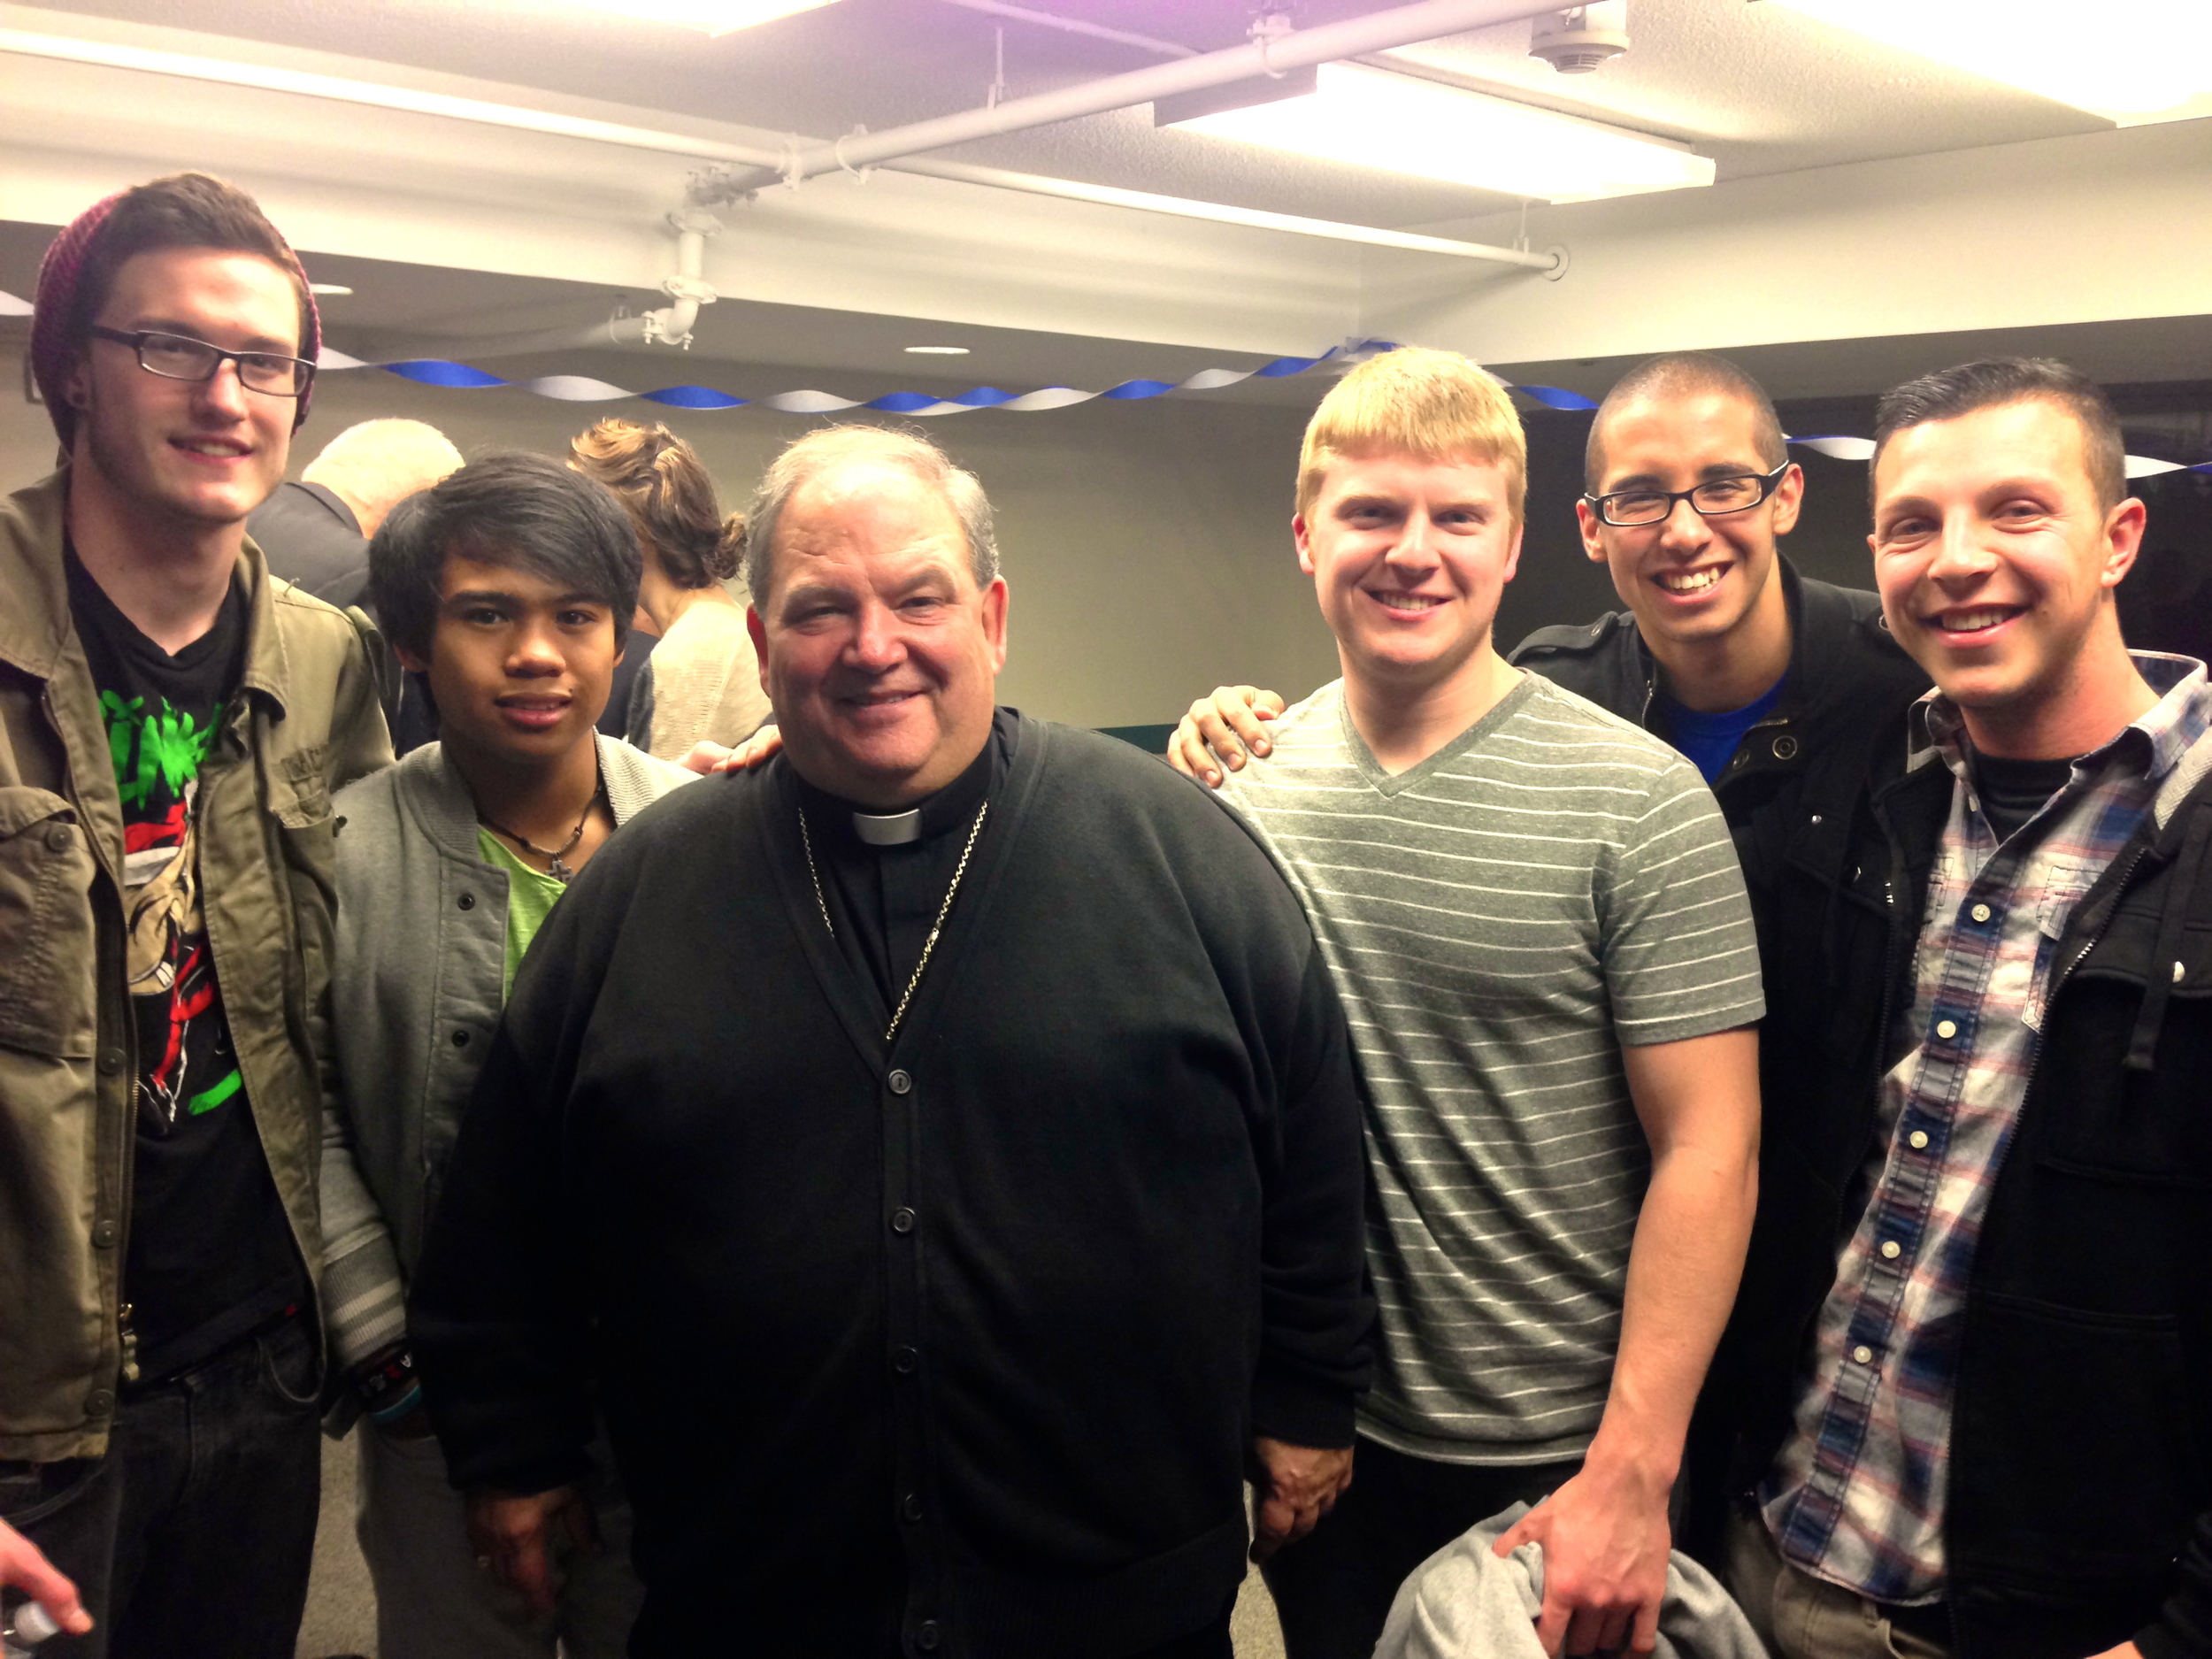 Archbishop Hebda with SPO NJ Household members (From left to right; Dan K., Meeko, Dan M, Silvio, and Mike B.)